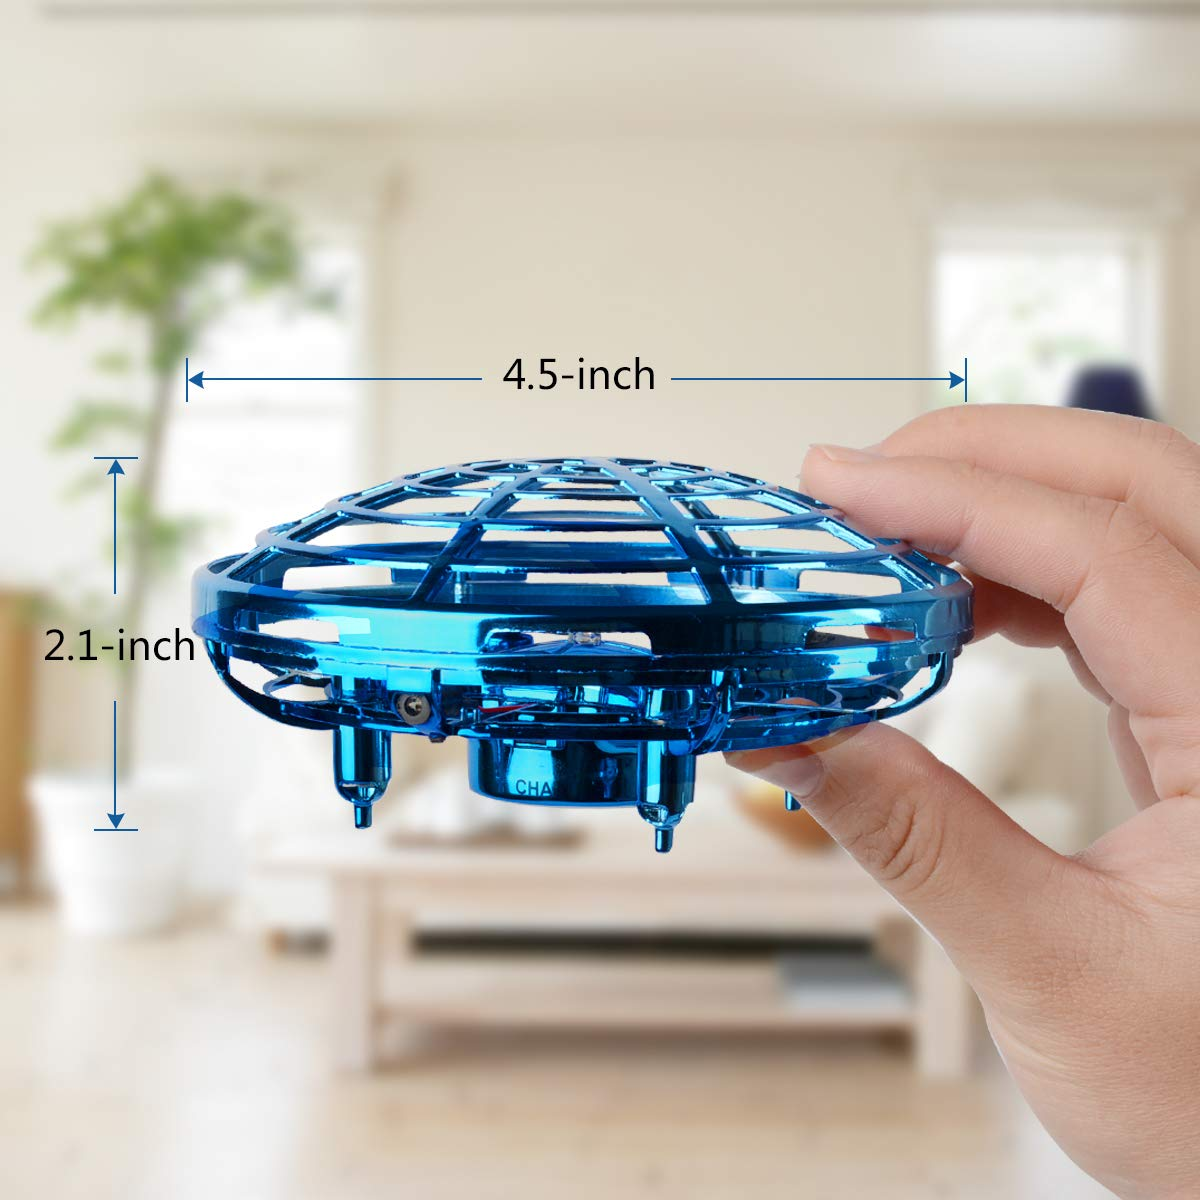 Oucles Mini Drones for Kids and Adults Ball with 360° Rotating and Shinning LED Lights, Flying Toy for Boys Girls and Kids Gifts by Oucles (Image #2)